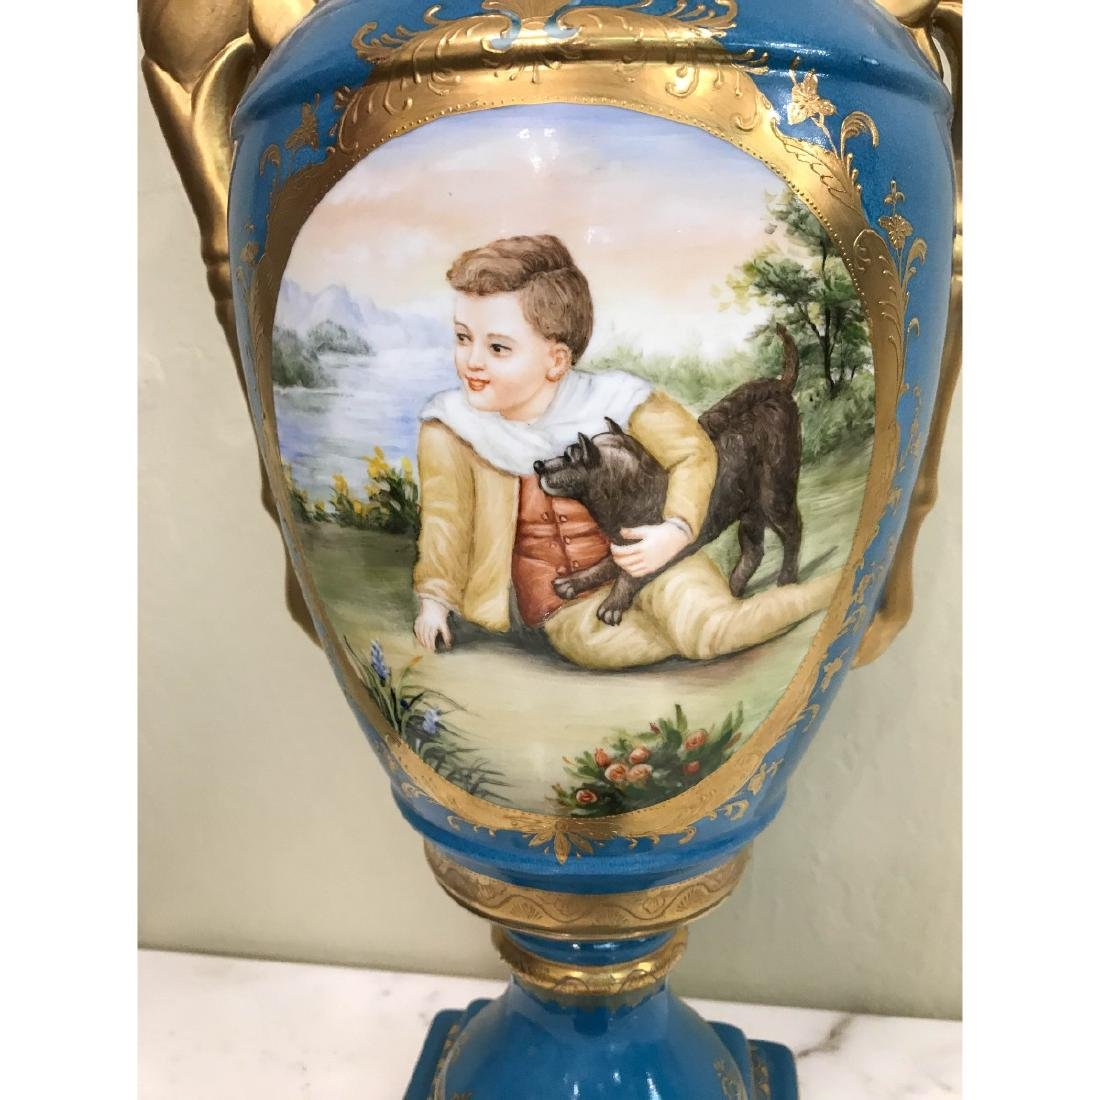 Art Deco Porcelain Vase w/ 24k Leaf, Scenery - 5